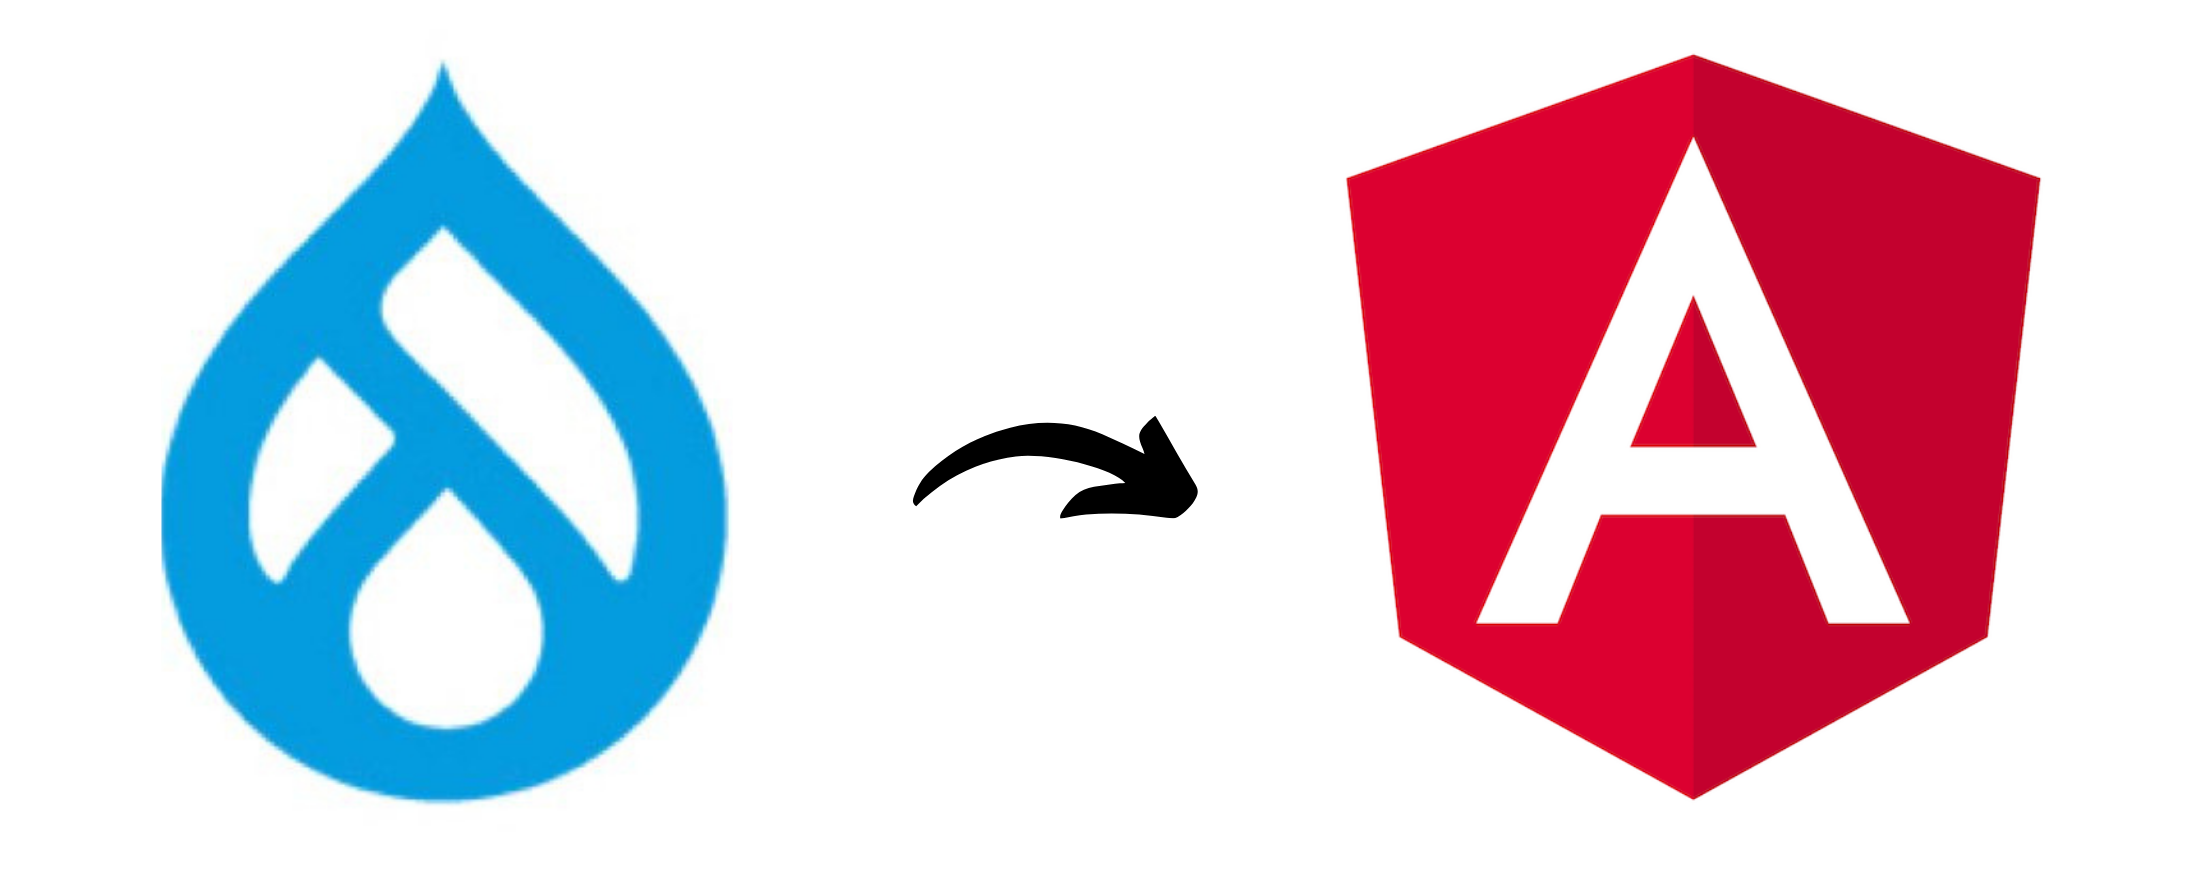 The Drupal and Angular logos can be seen together.